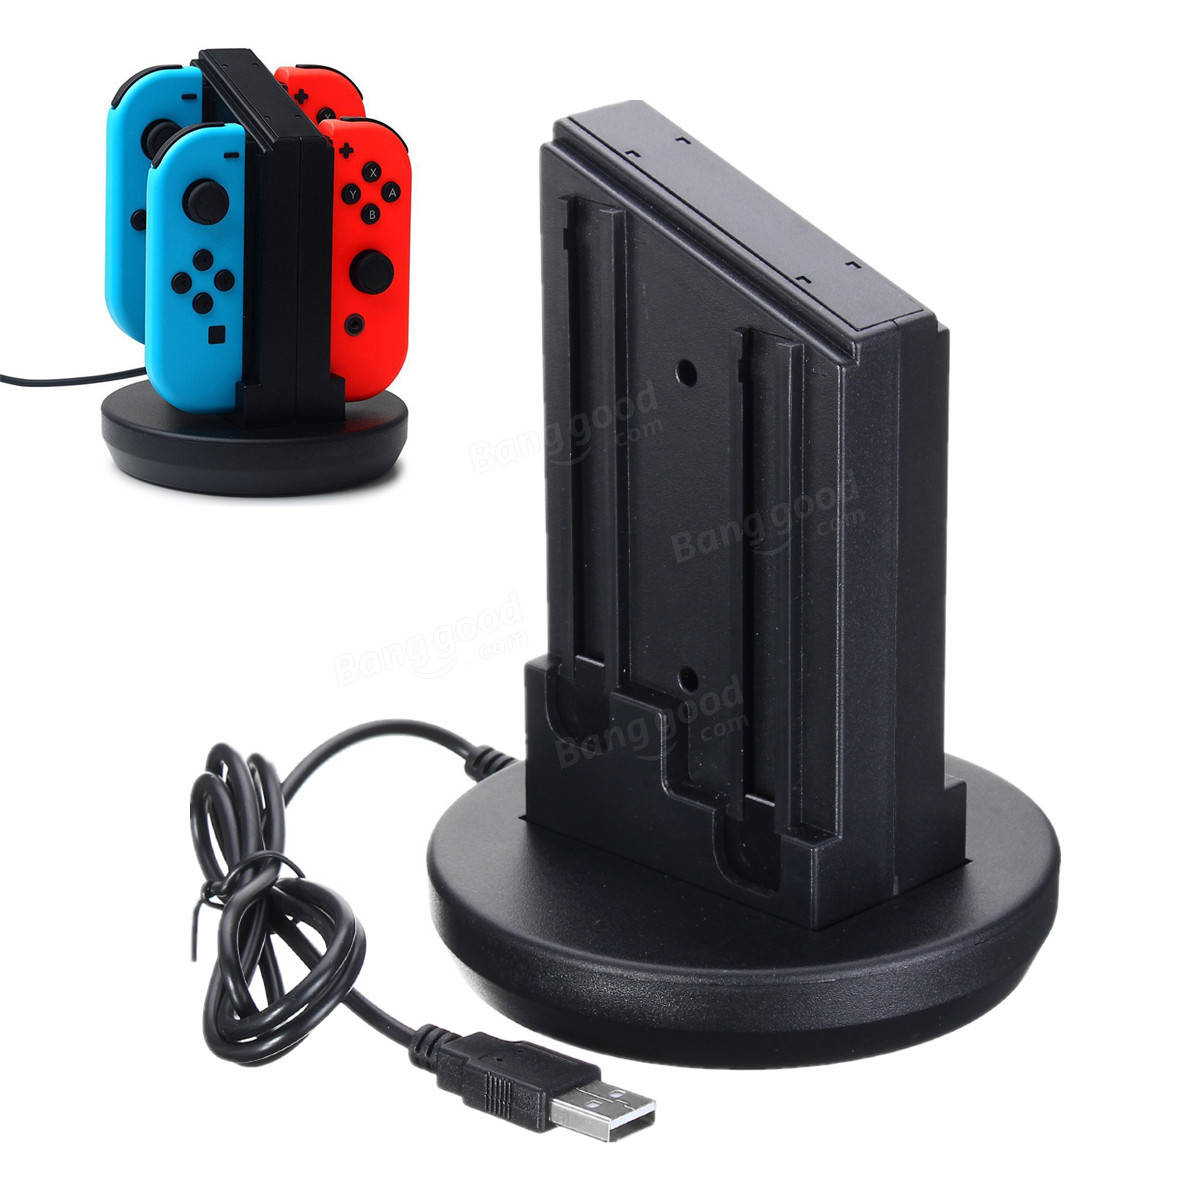 Charging Dock Cradle Station Charger For Nintendo Switch 4 Joy-Con Controller